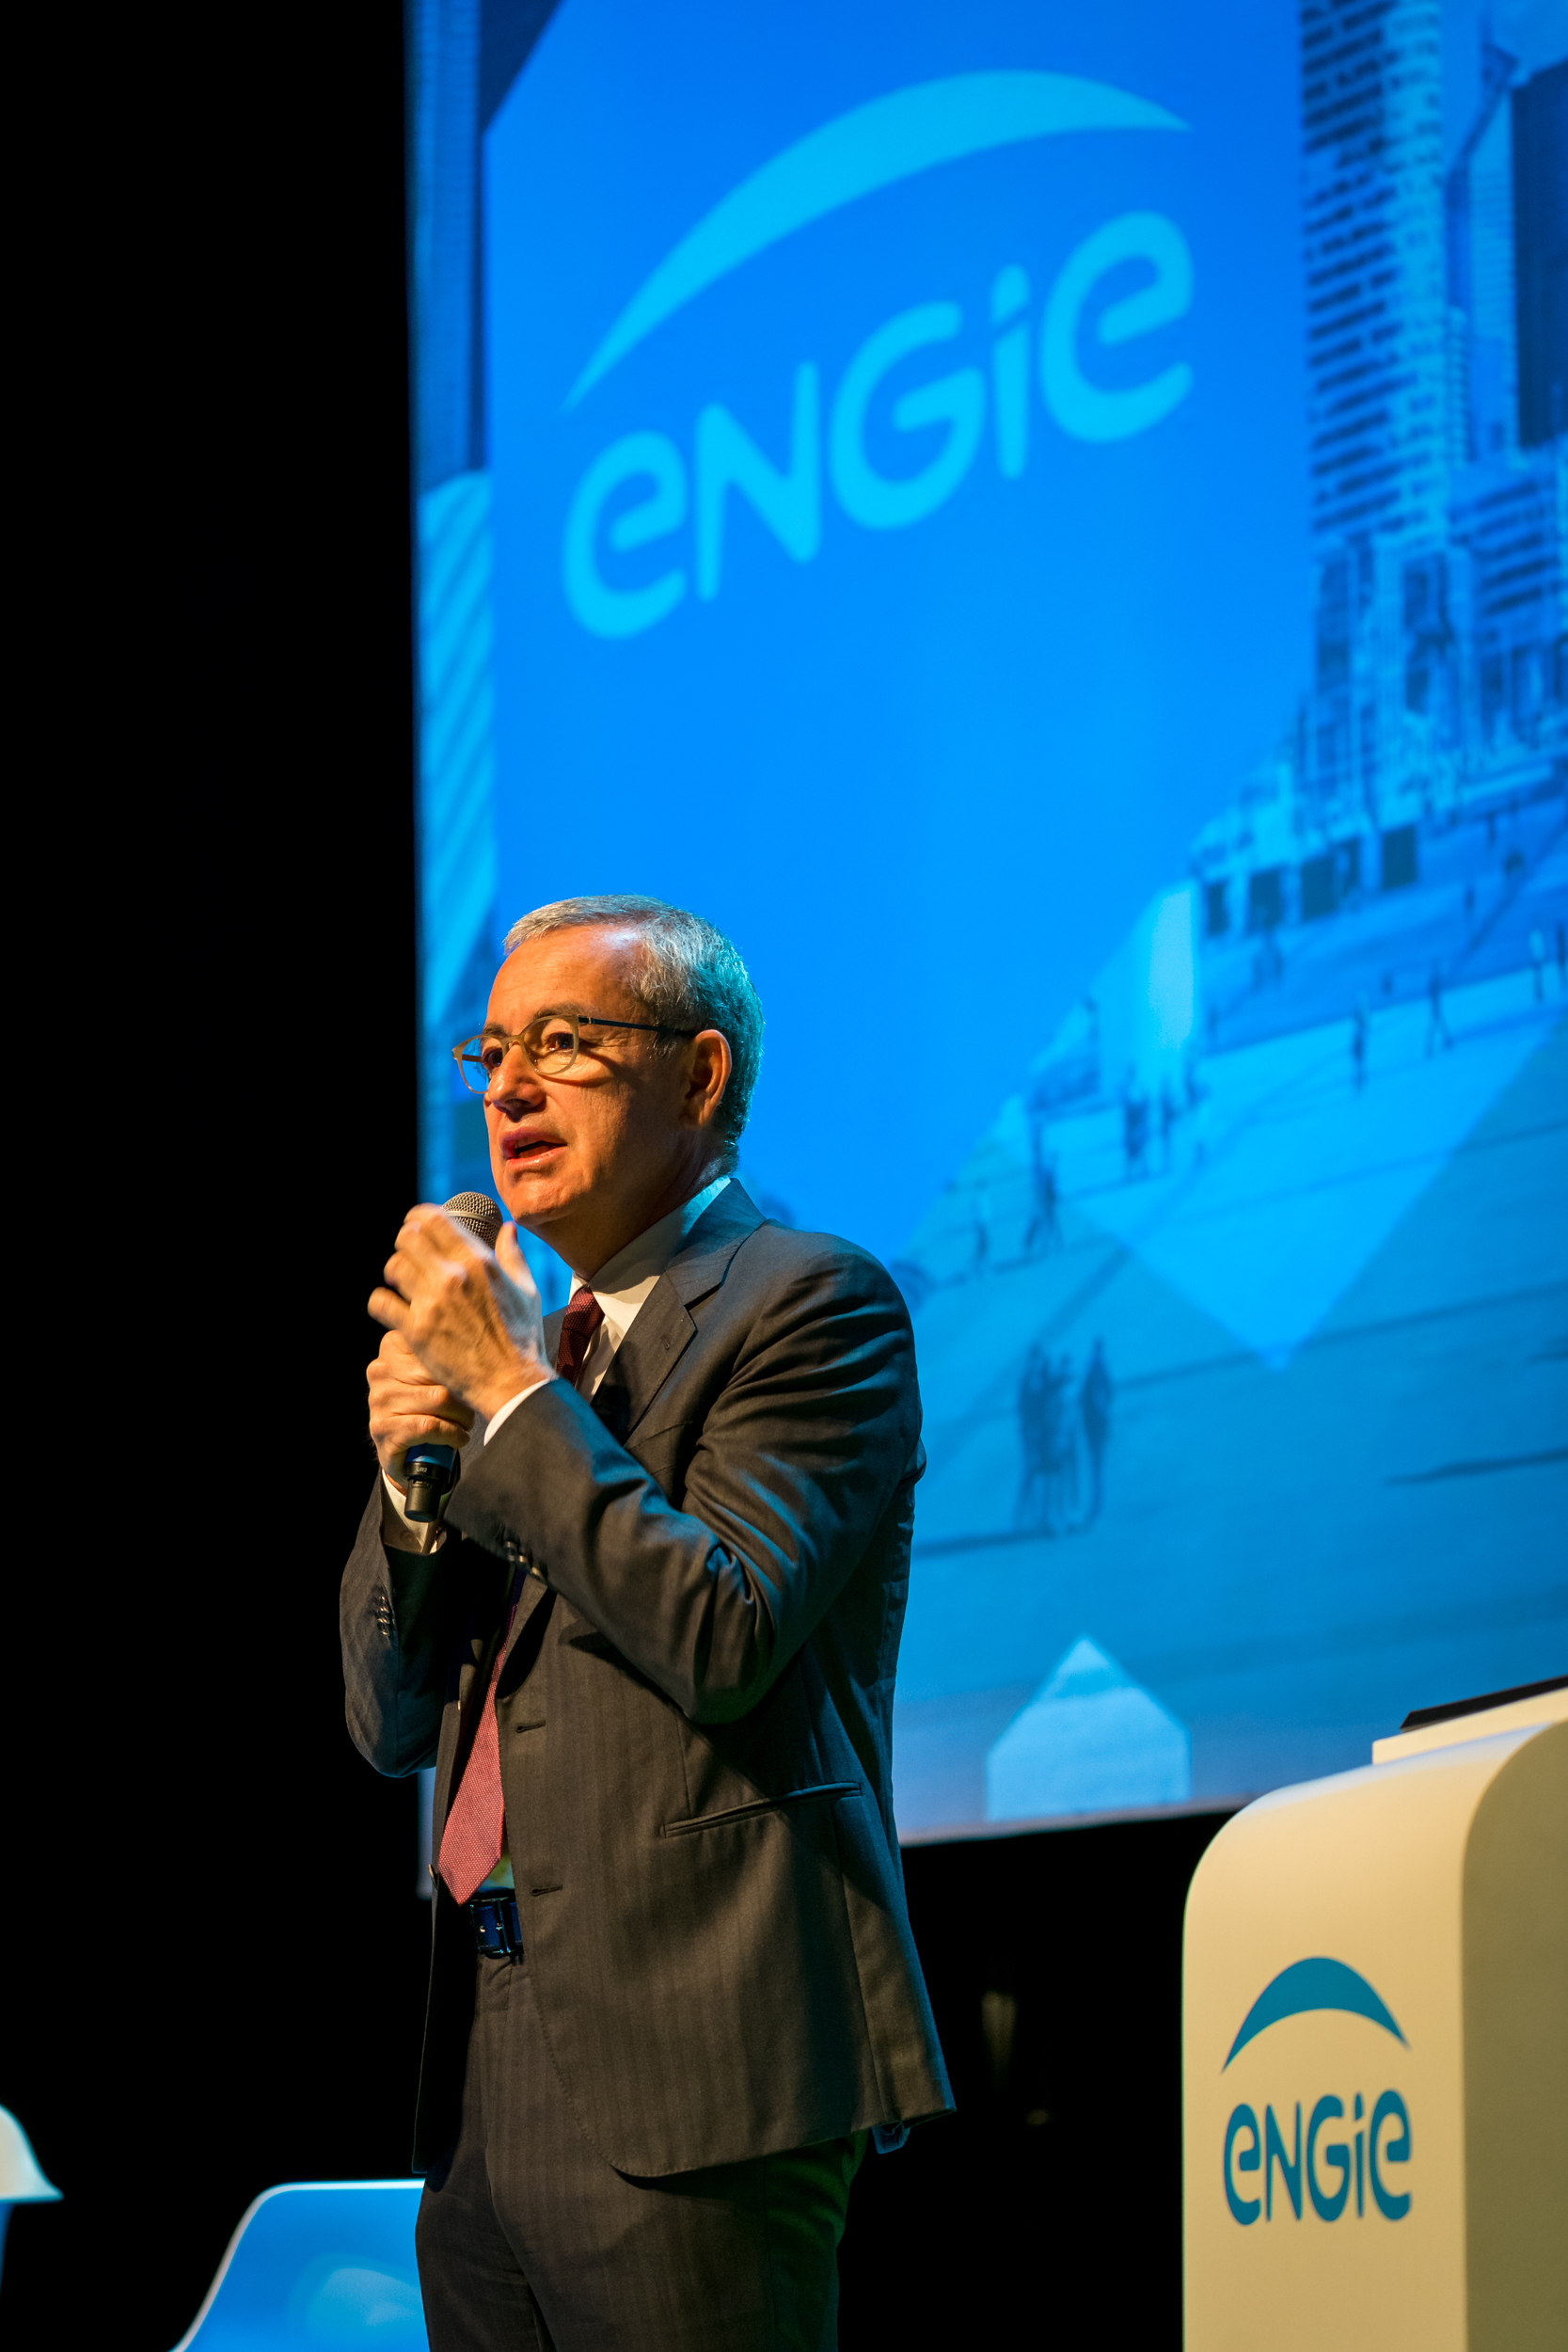 Engie_Convention France_21-05-19_Florian Leger_HD_N°-141.jpg